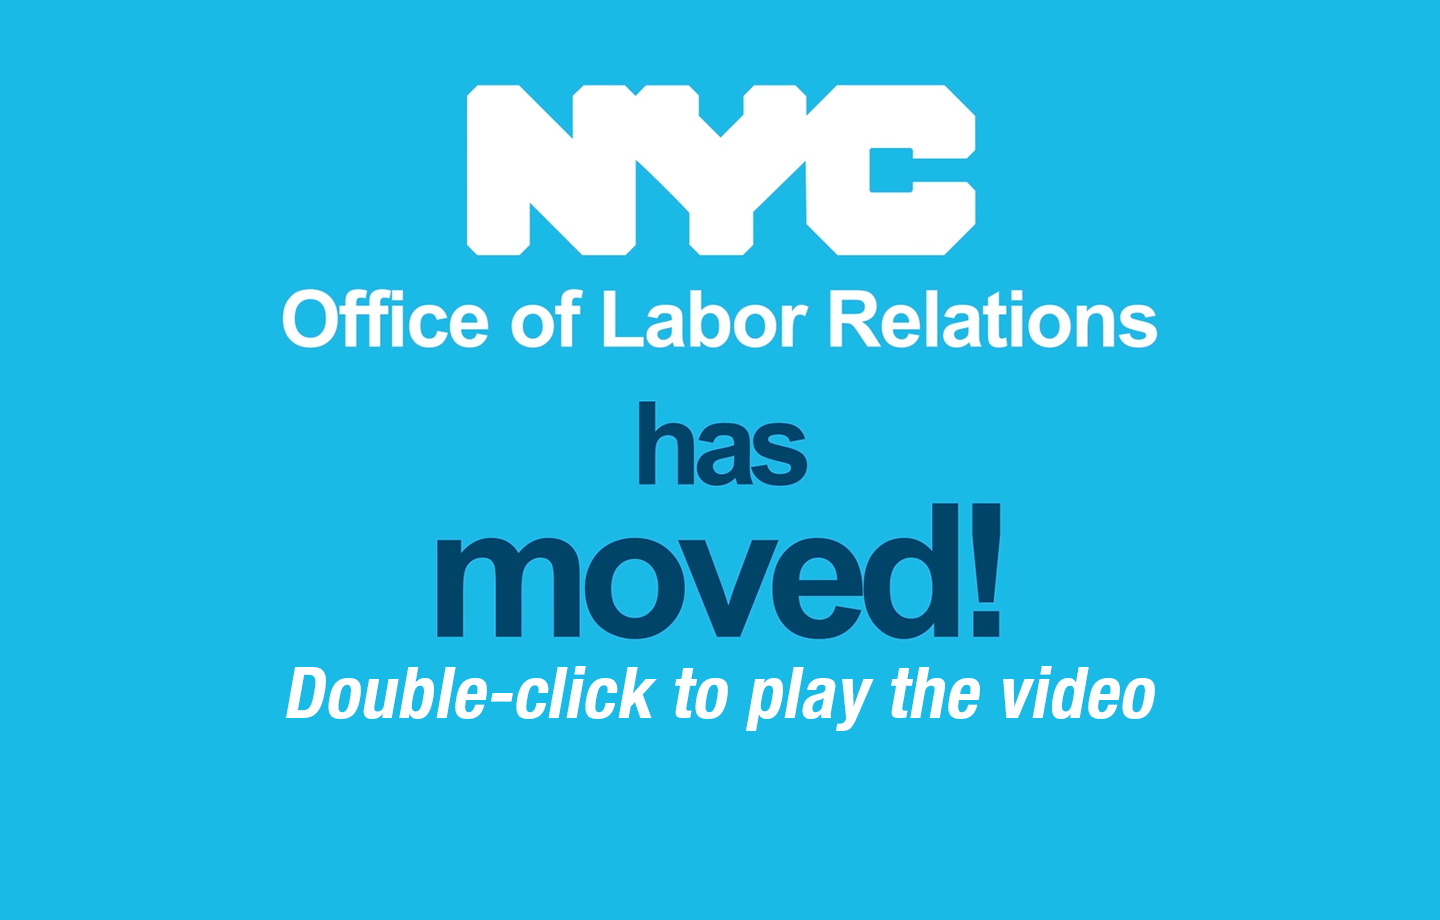 Office of Labor Relations